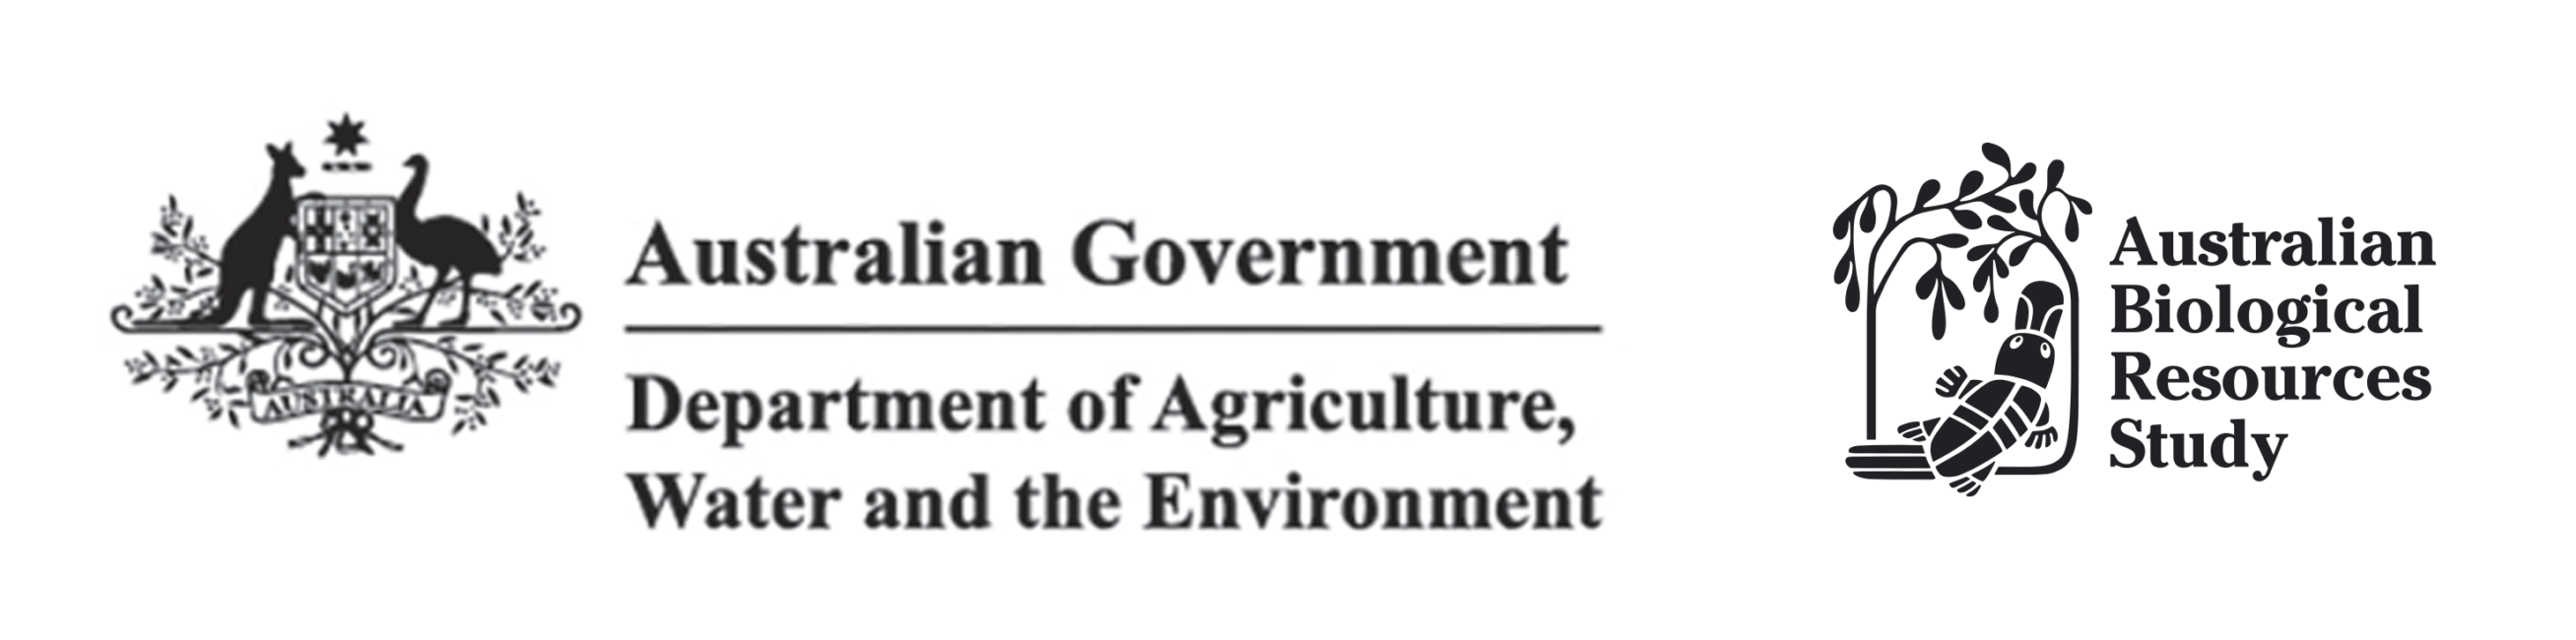 Logos for the Department of Agriculture, Water and the Environment; and, Australian Biological Resoruces Study (ABRS).